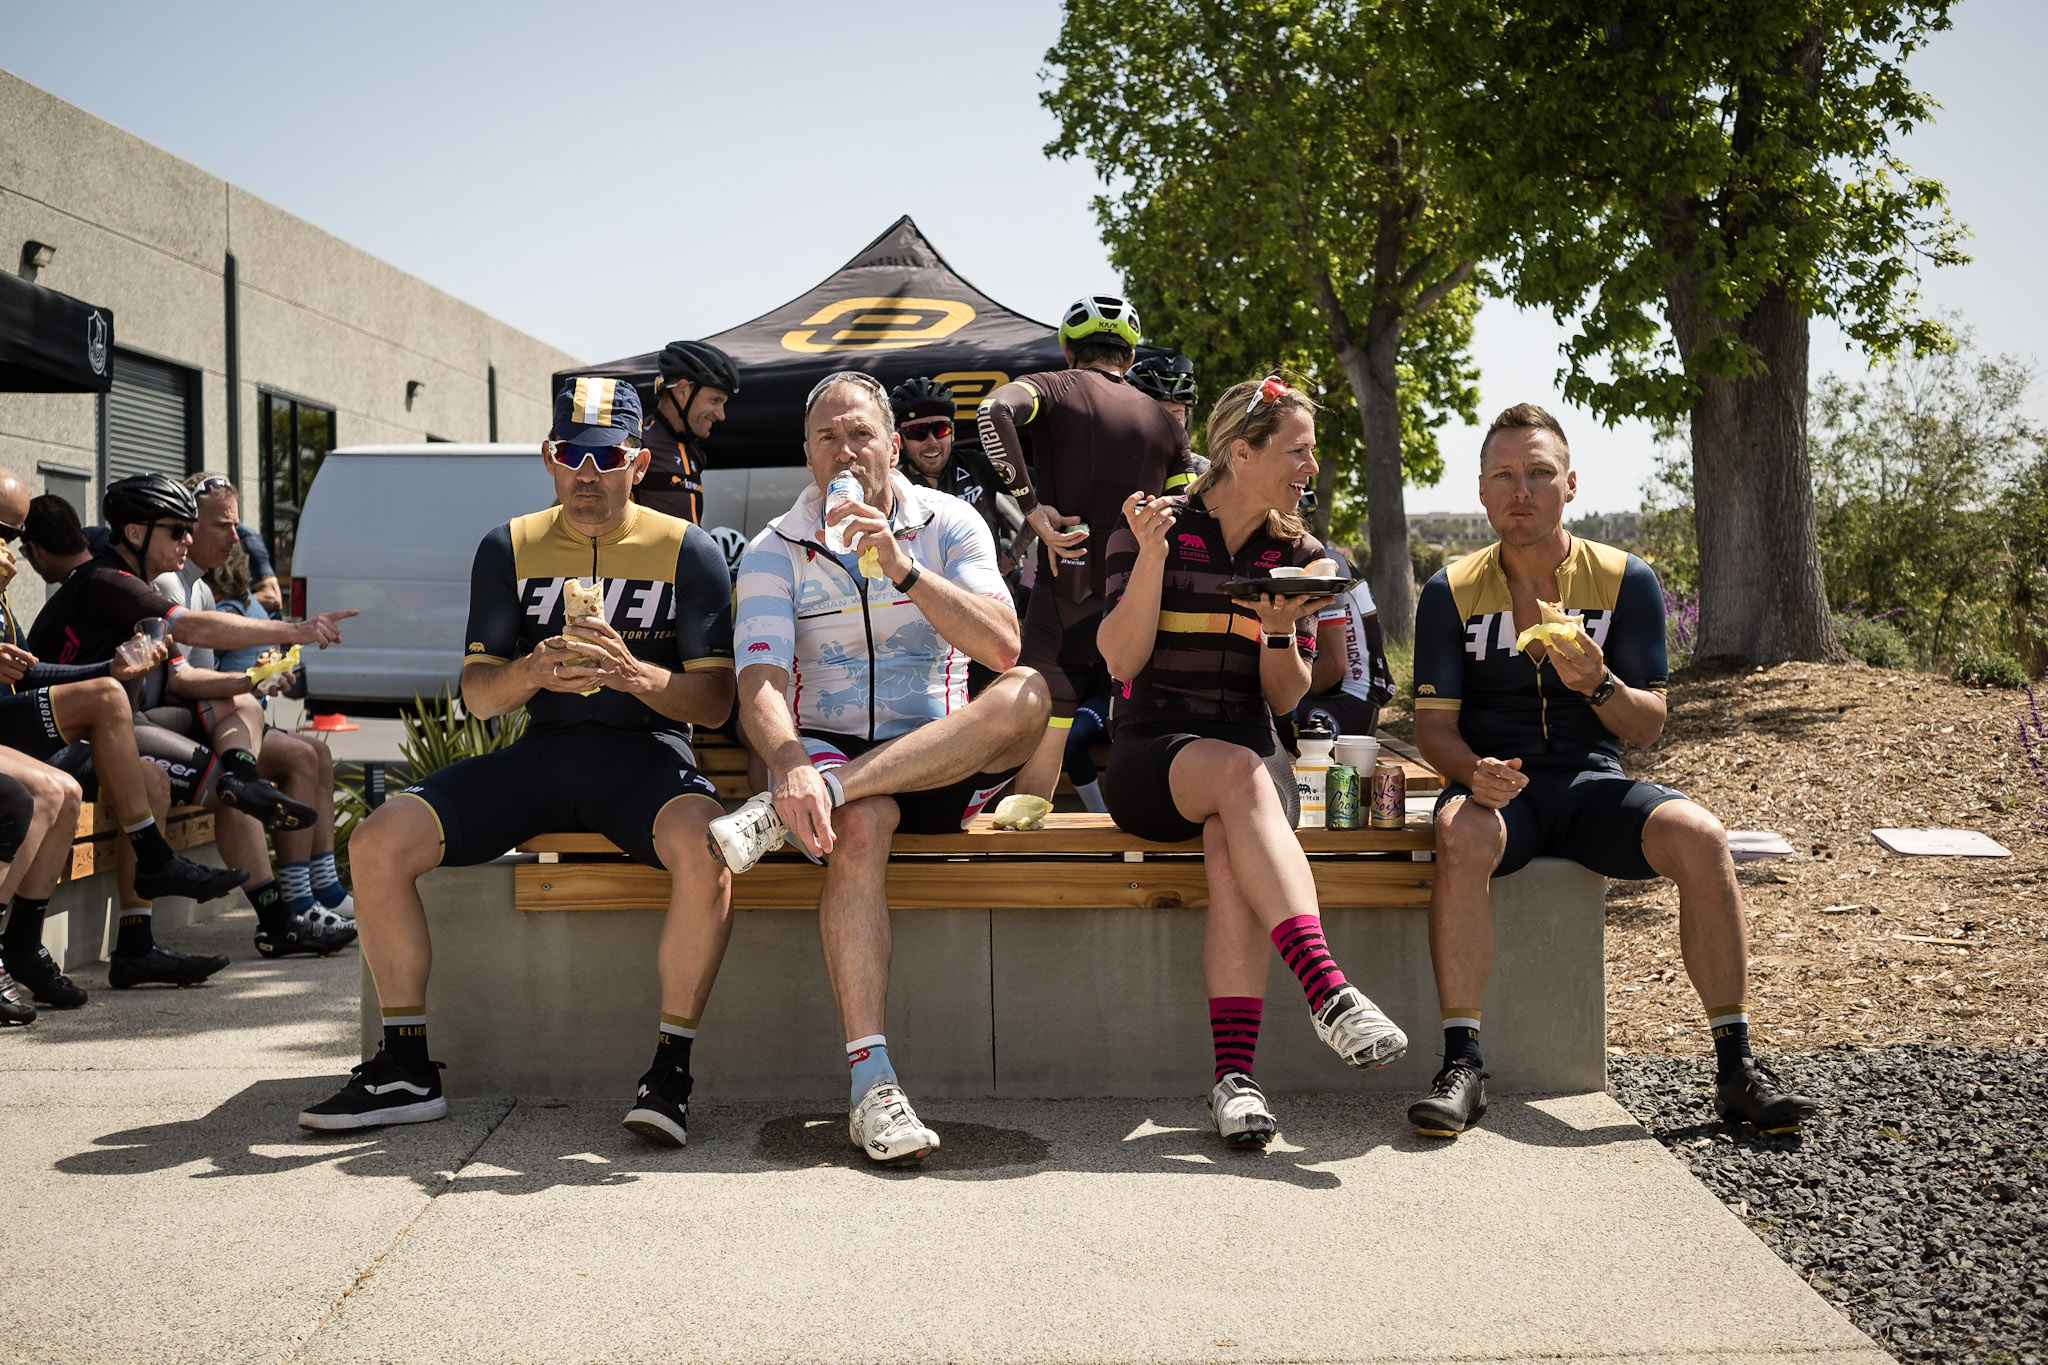 Brandt Furgerson of Eliel Cycling and friends enjoying some of that BBR good good.